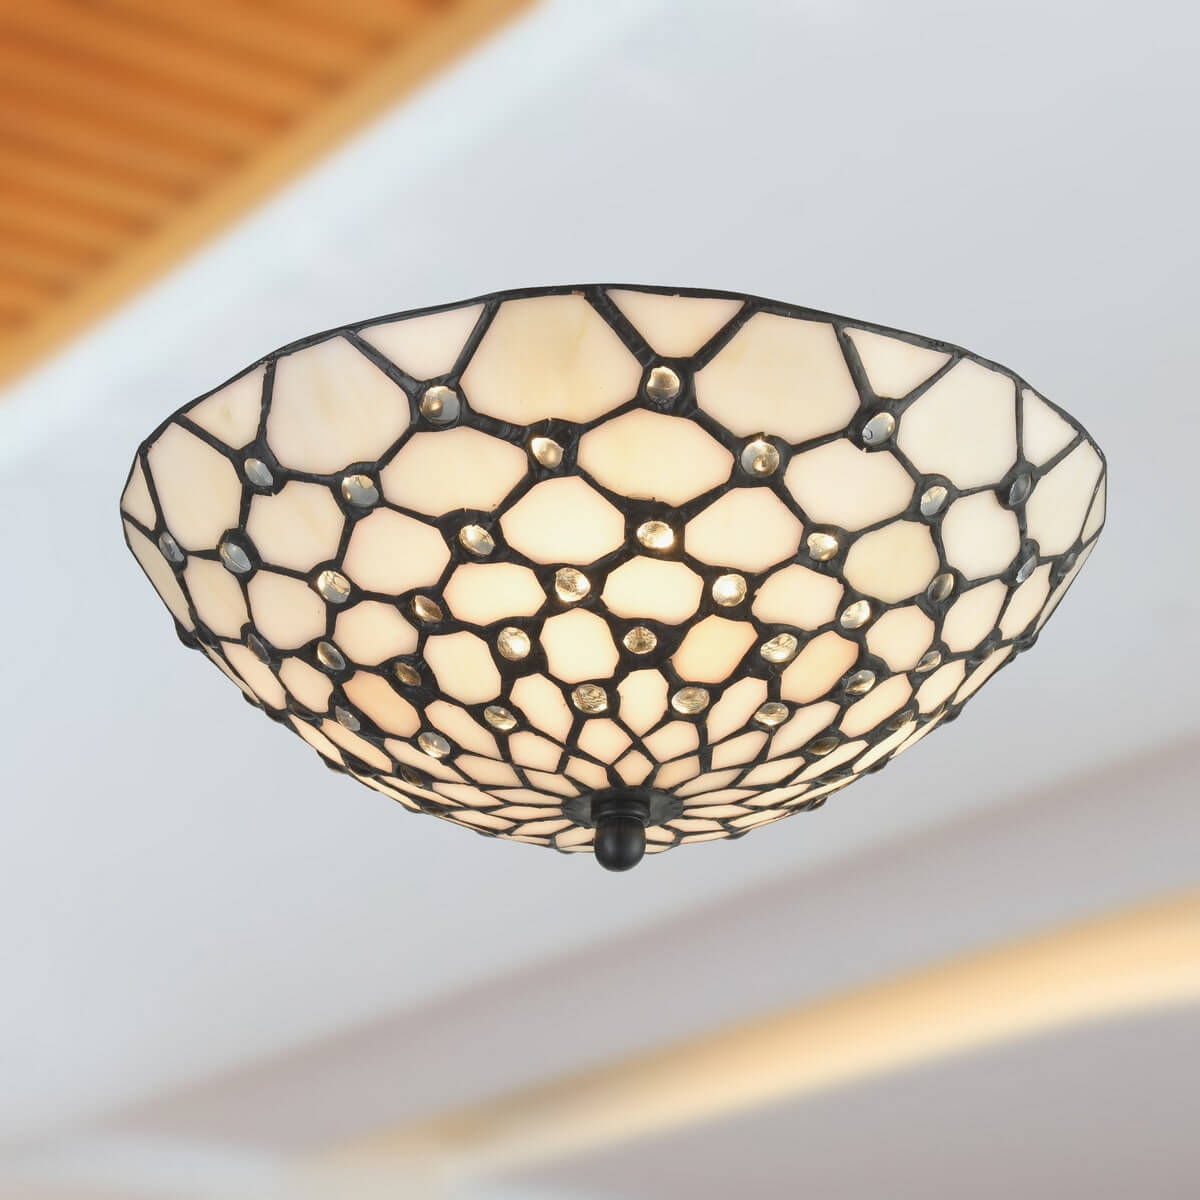 Tiffany Stained Glass Semi Flush Kitchen Ceiling Lights